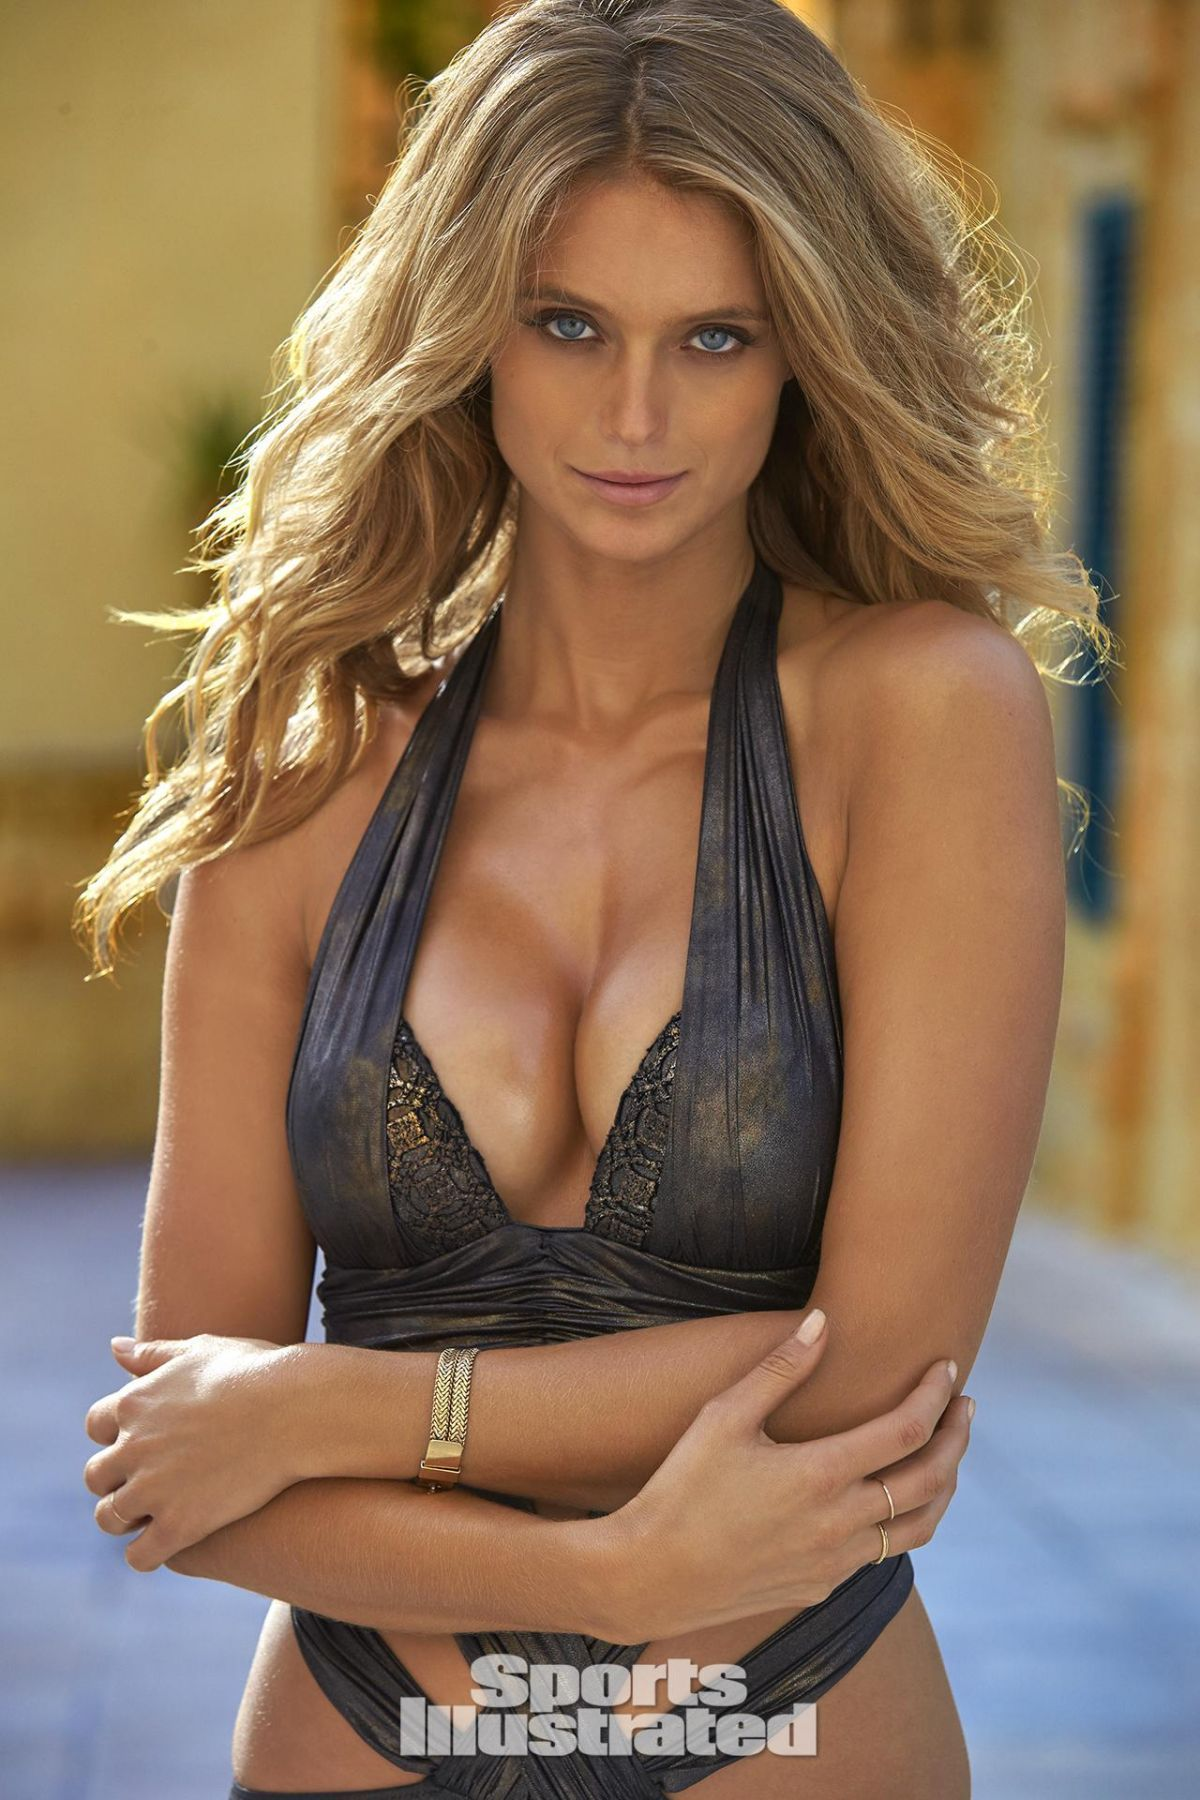 Young Kate Bock nudes (97 photo), Topless, Sideboobs, Instagram, cameltoe 2017